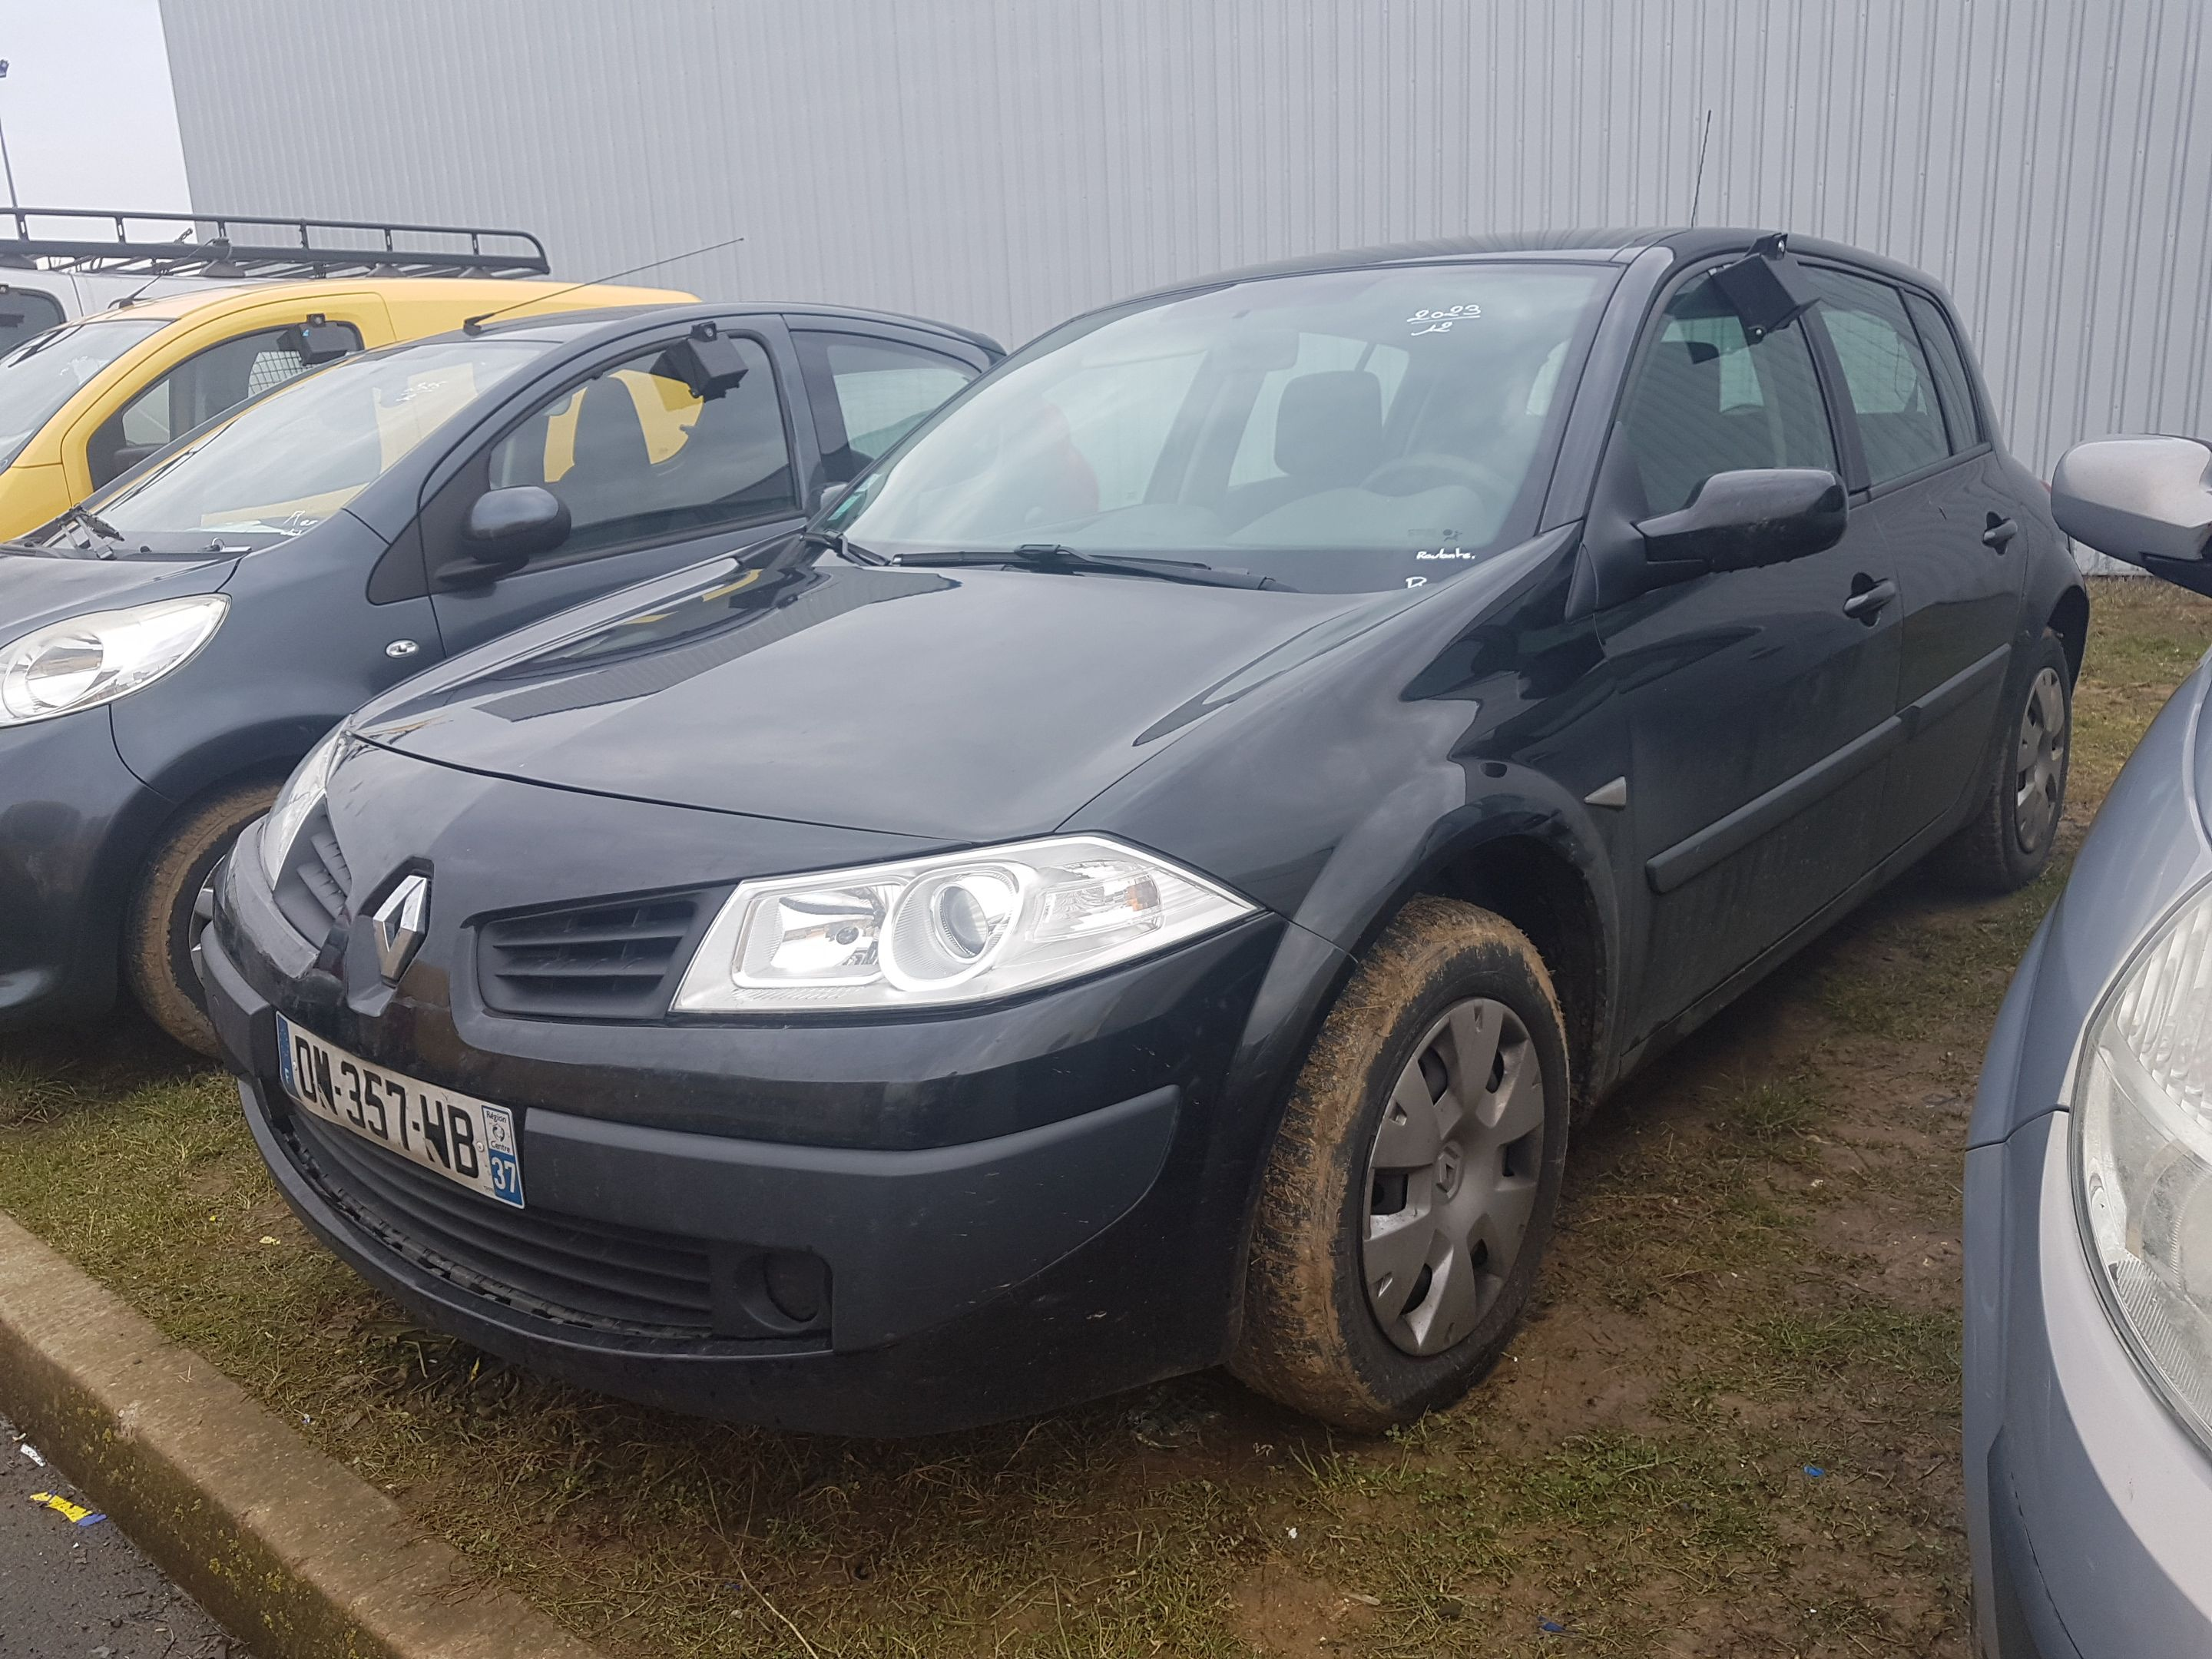 renault megane ii berline 12 2005 04 2009 m gane ii 1 5 dci 85 expression alcopa auction. Black Bedroom Furniture Sets. Home Design Ideas